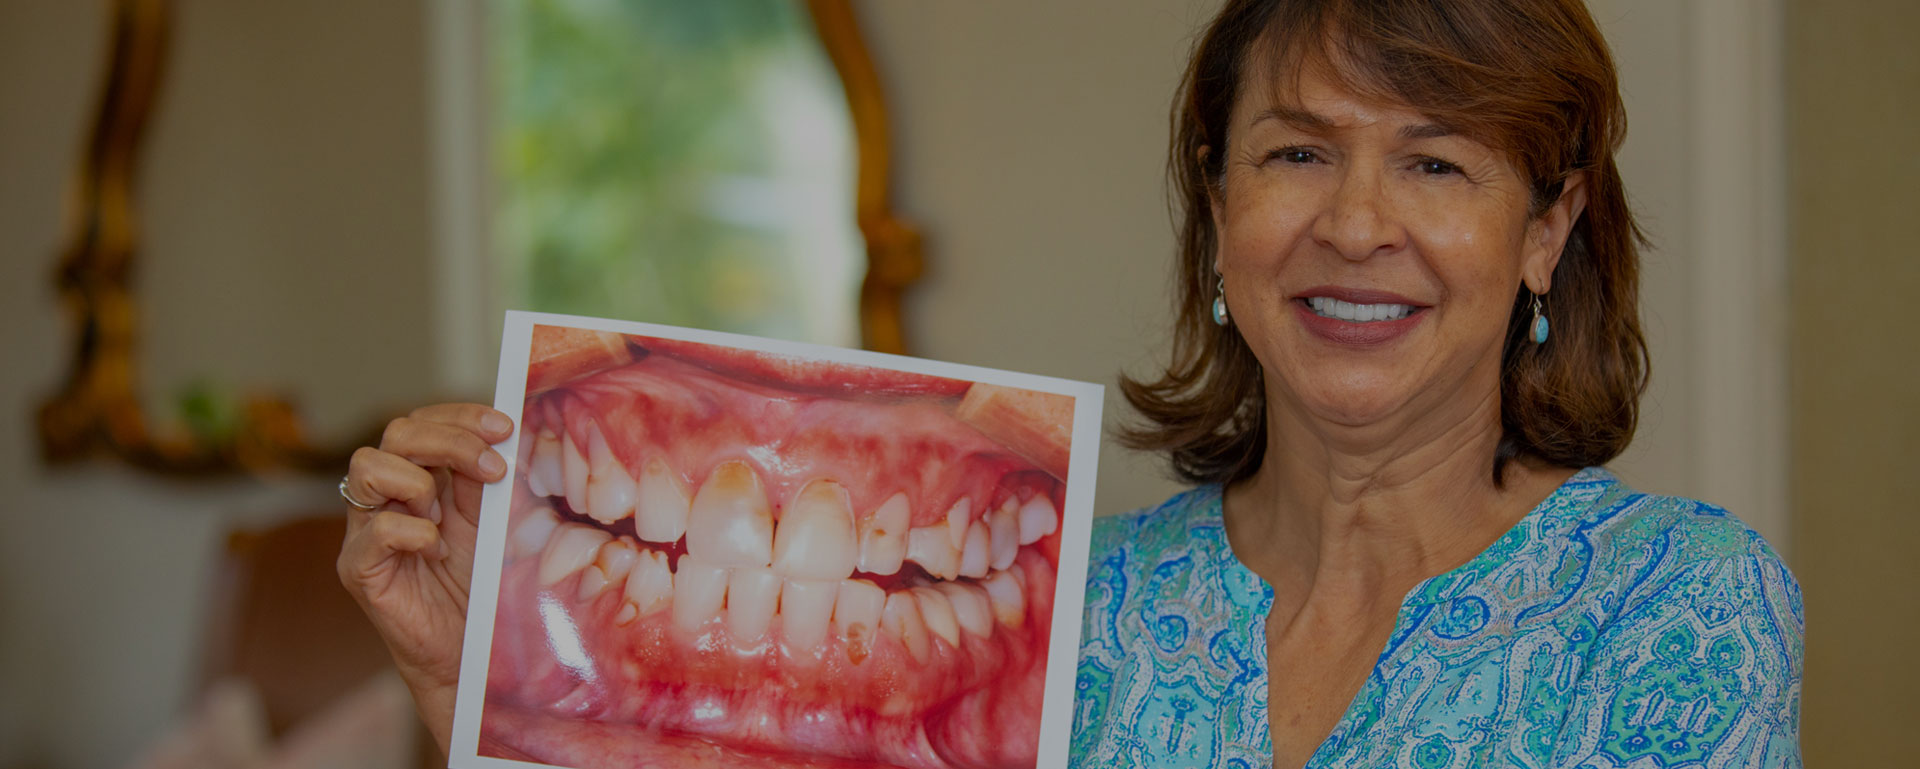 A patient holding up a photo of her teeth